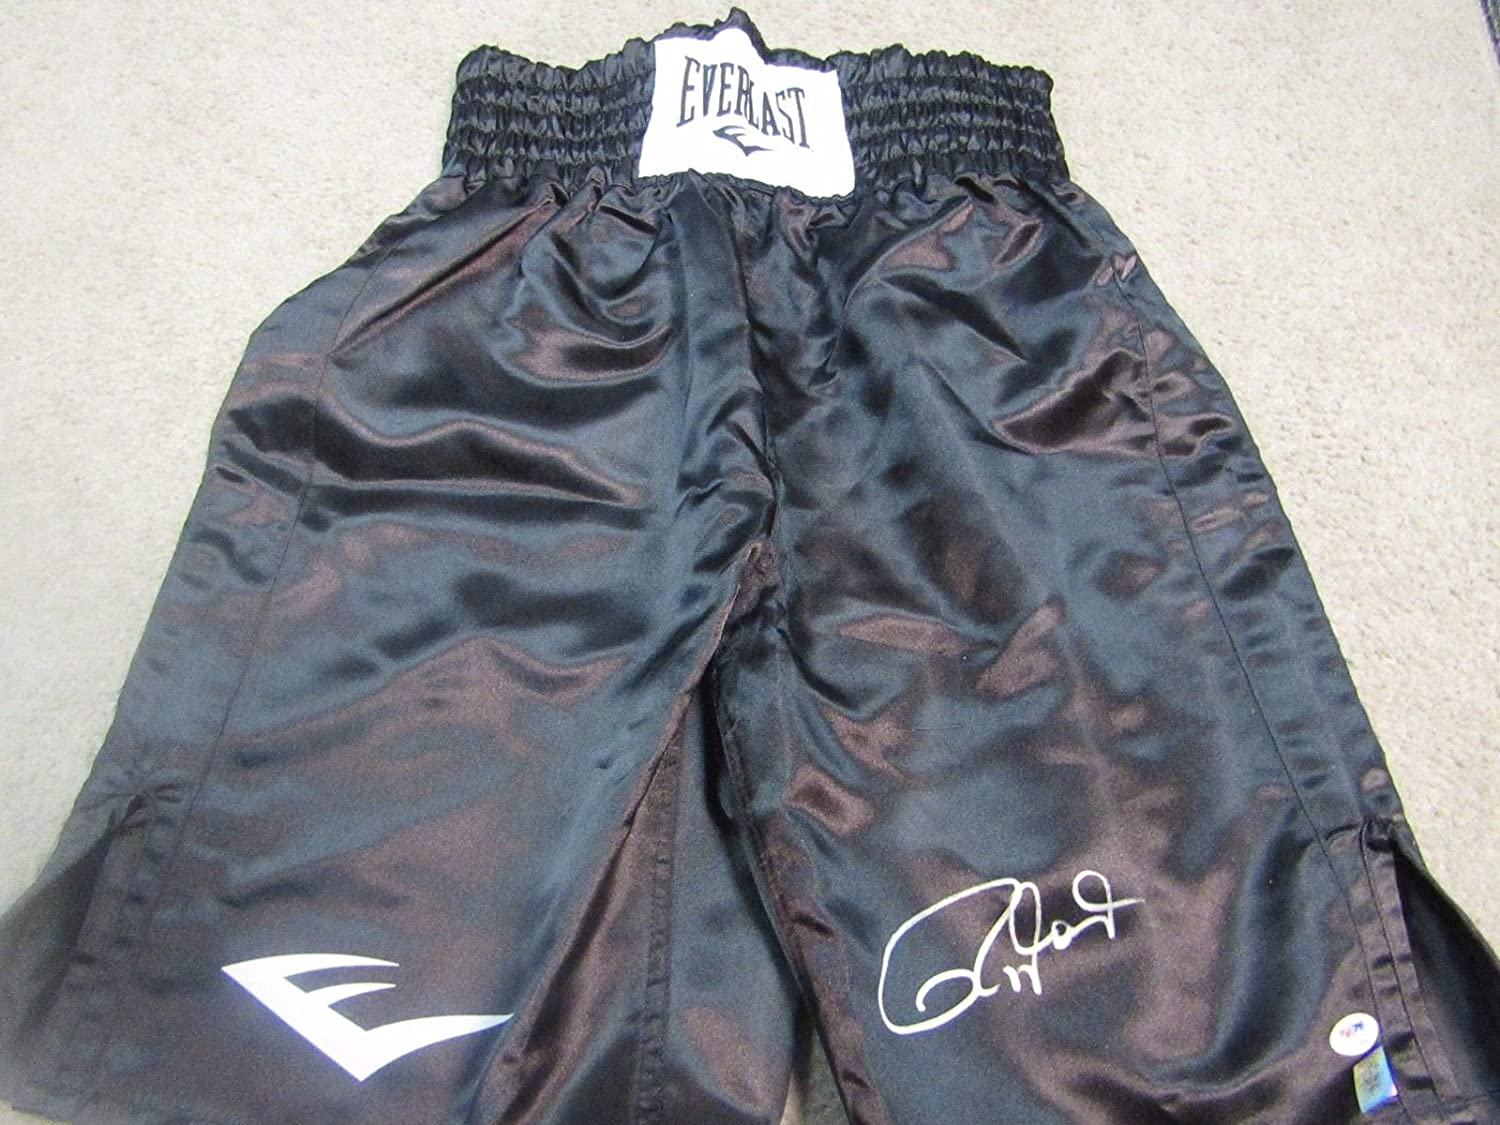 ROY JONES JR AUTOGRAPHED SIGNED BOXING TRUNKS PSA / DNA COA and Picture proof